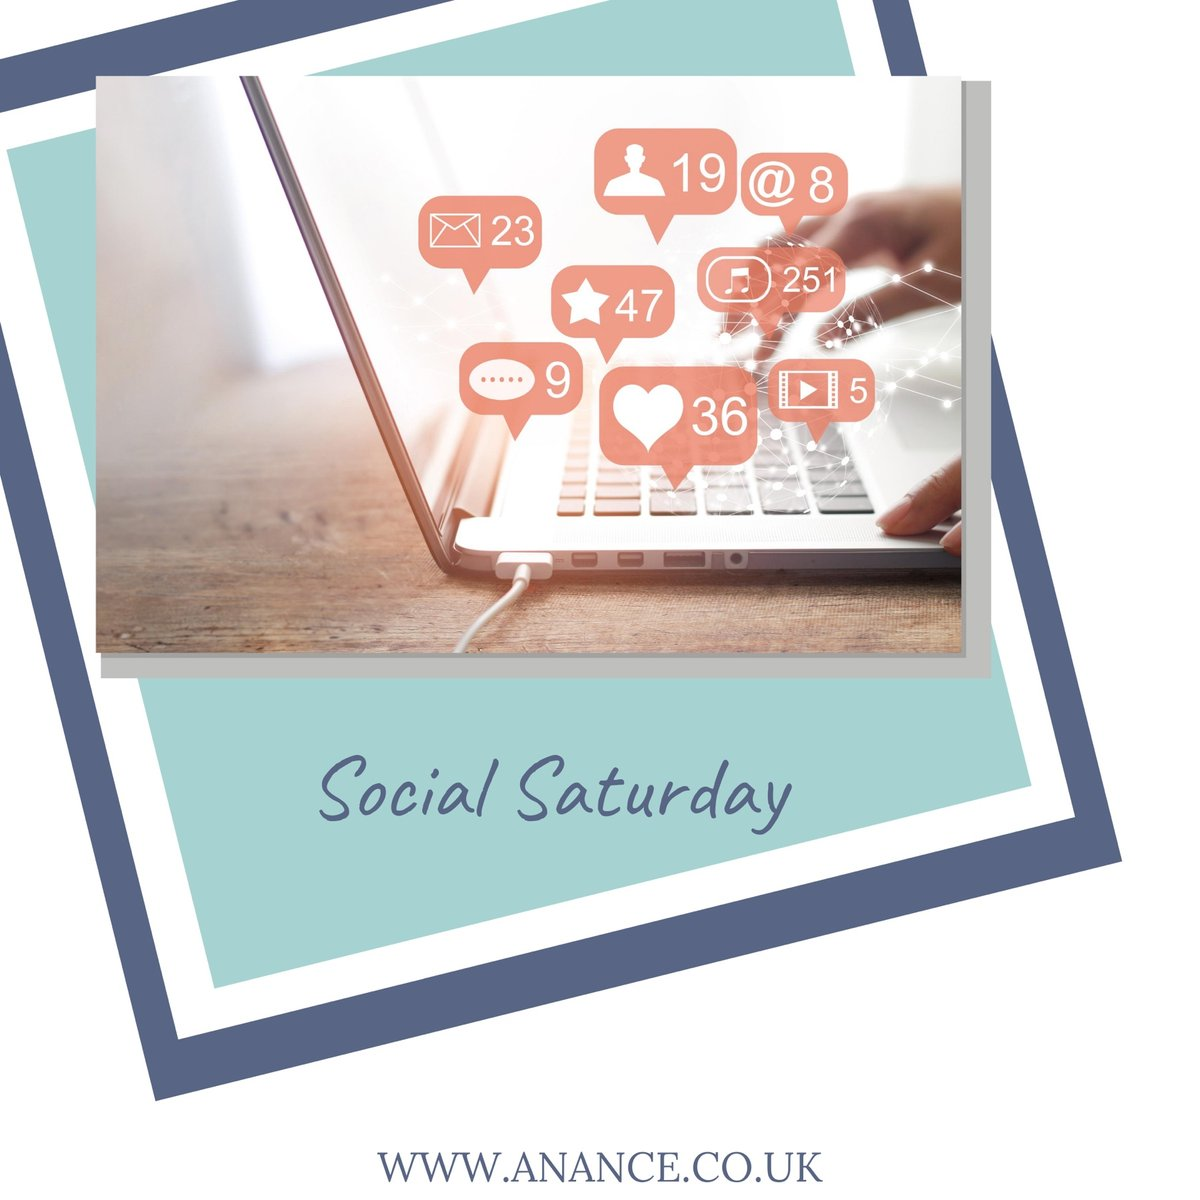 // Social Saturday //  This week I'm dedicating my social Saturday to @_craftanna_  Now I've been following this account for a while and I just love her flower collection,  #socialsaturday #supportsmallbusinesses #supporteachother #supportlocal #madewithlove #smallbiz https://t.co/EqjMNMY0XI